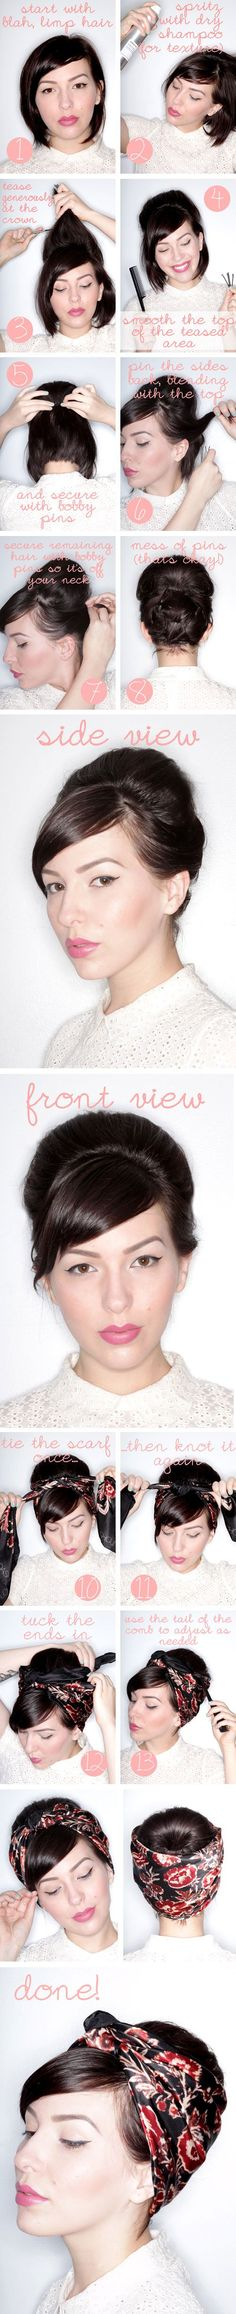 fantastic 19 Check more at http://weirdhood.com/fun/spring-hairstyles-veils-11-spectacular-options/